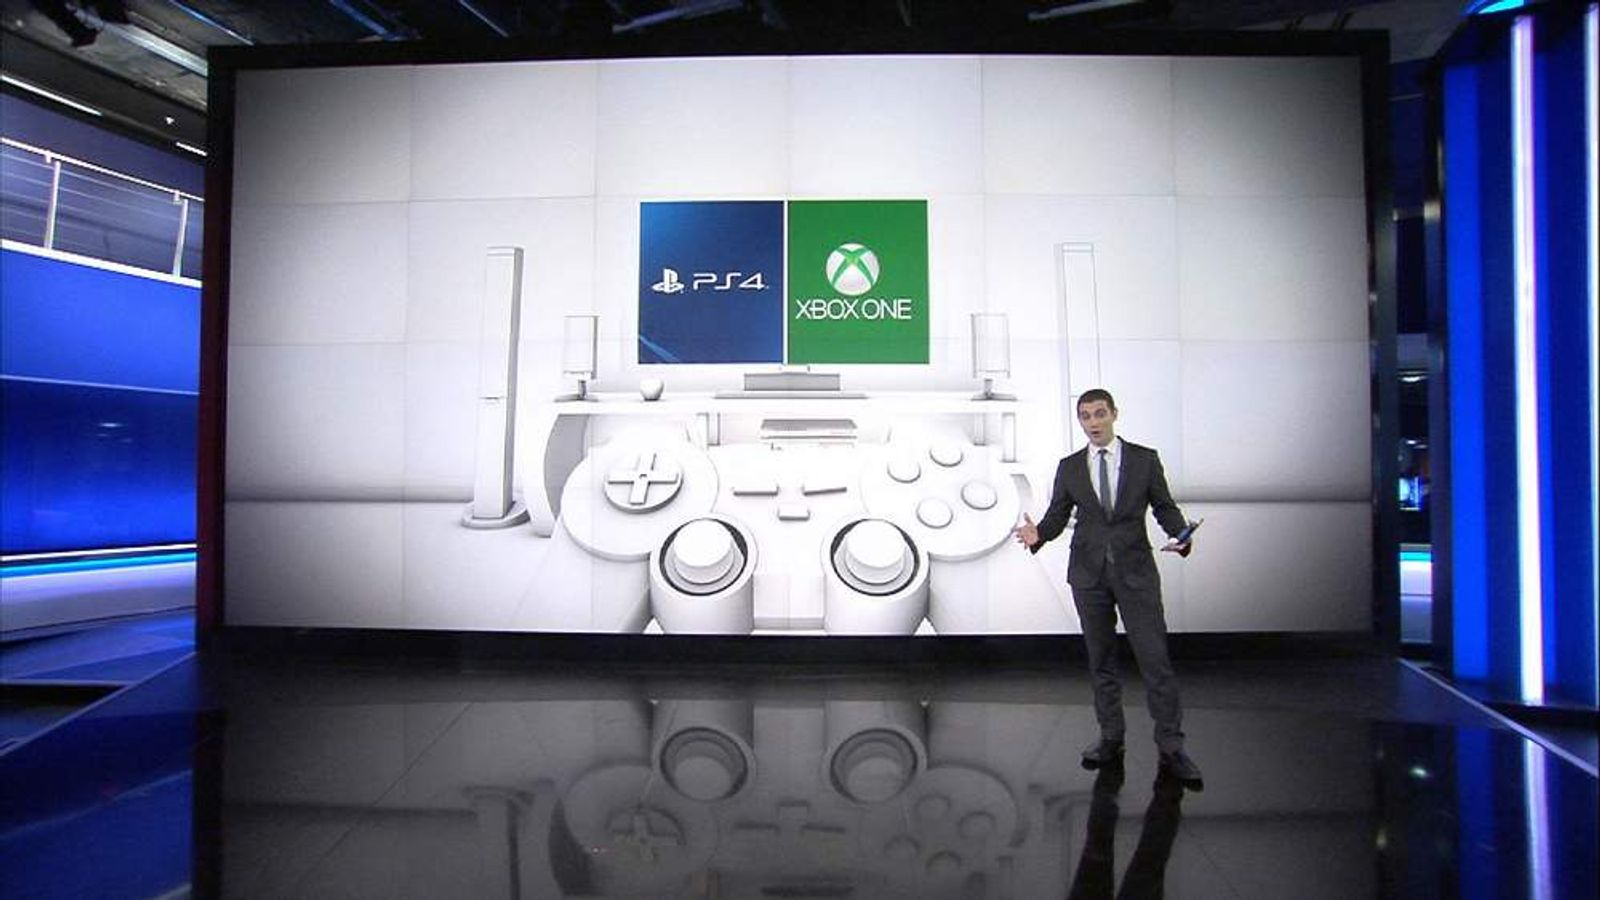 Playstation and XBox networks have been affected by a cyber attack